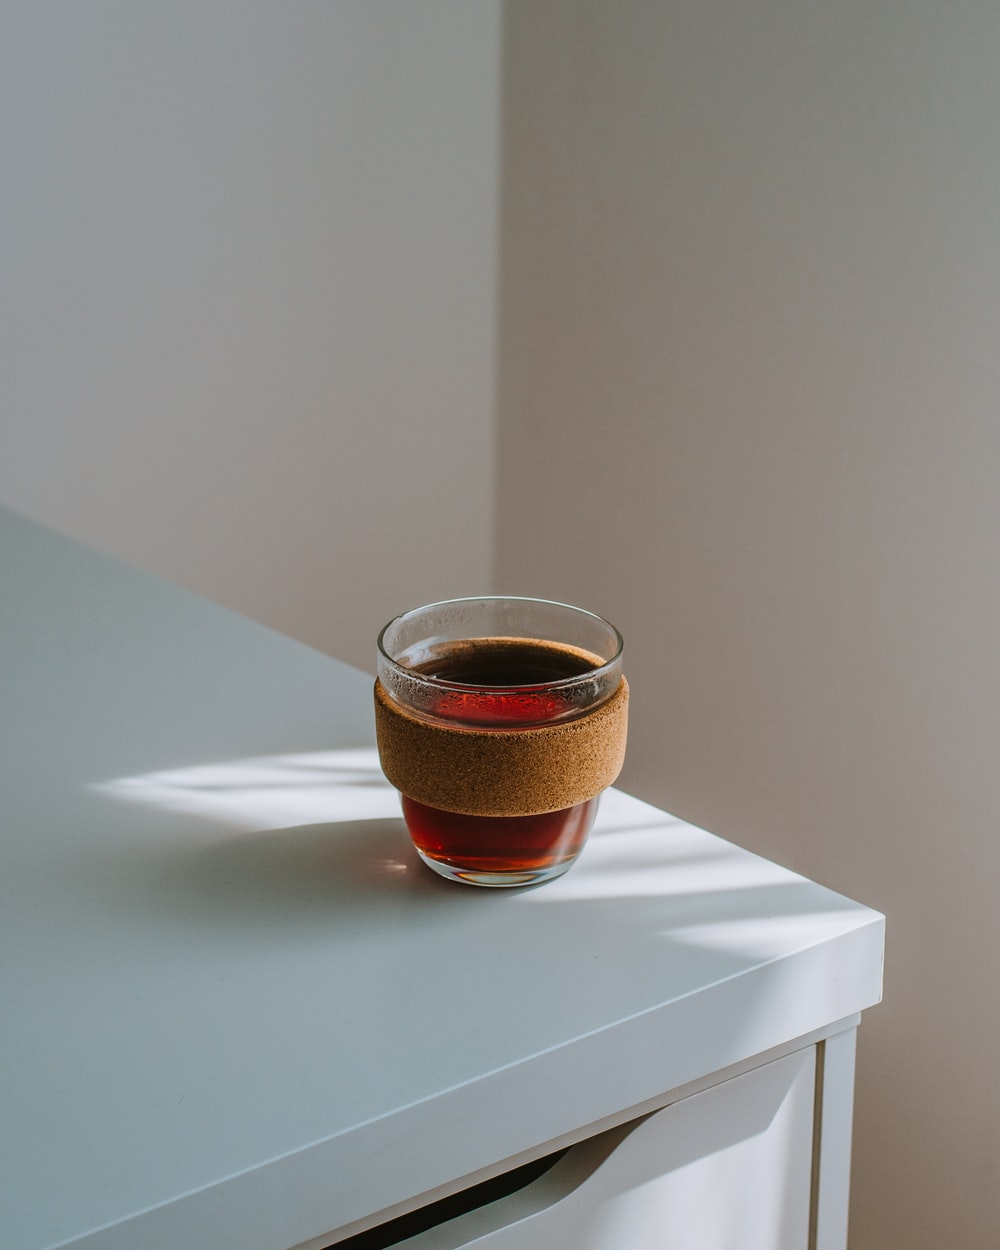 brown glass cup on white table